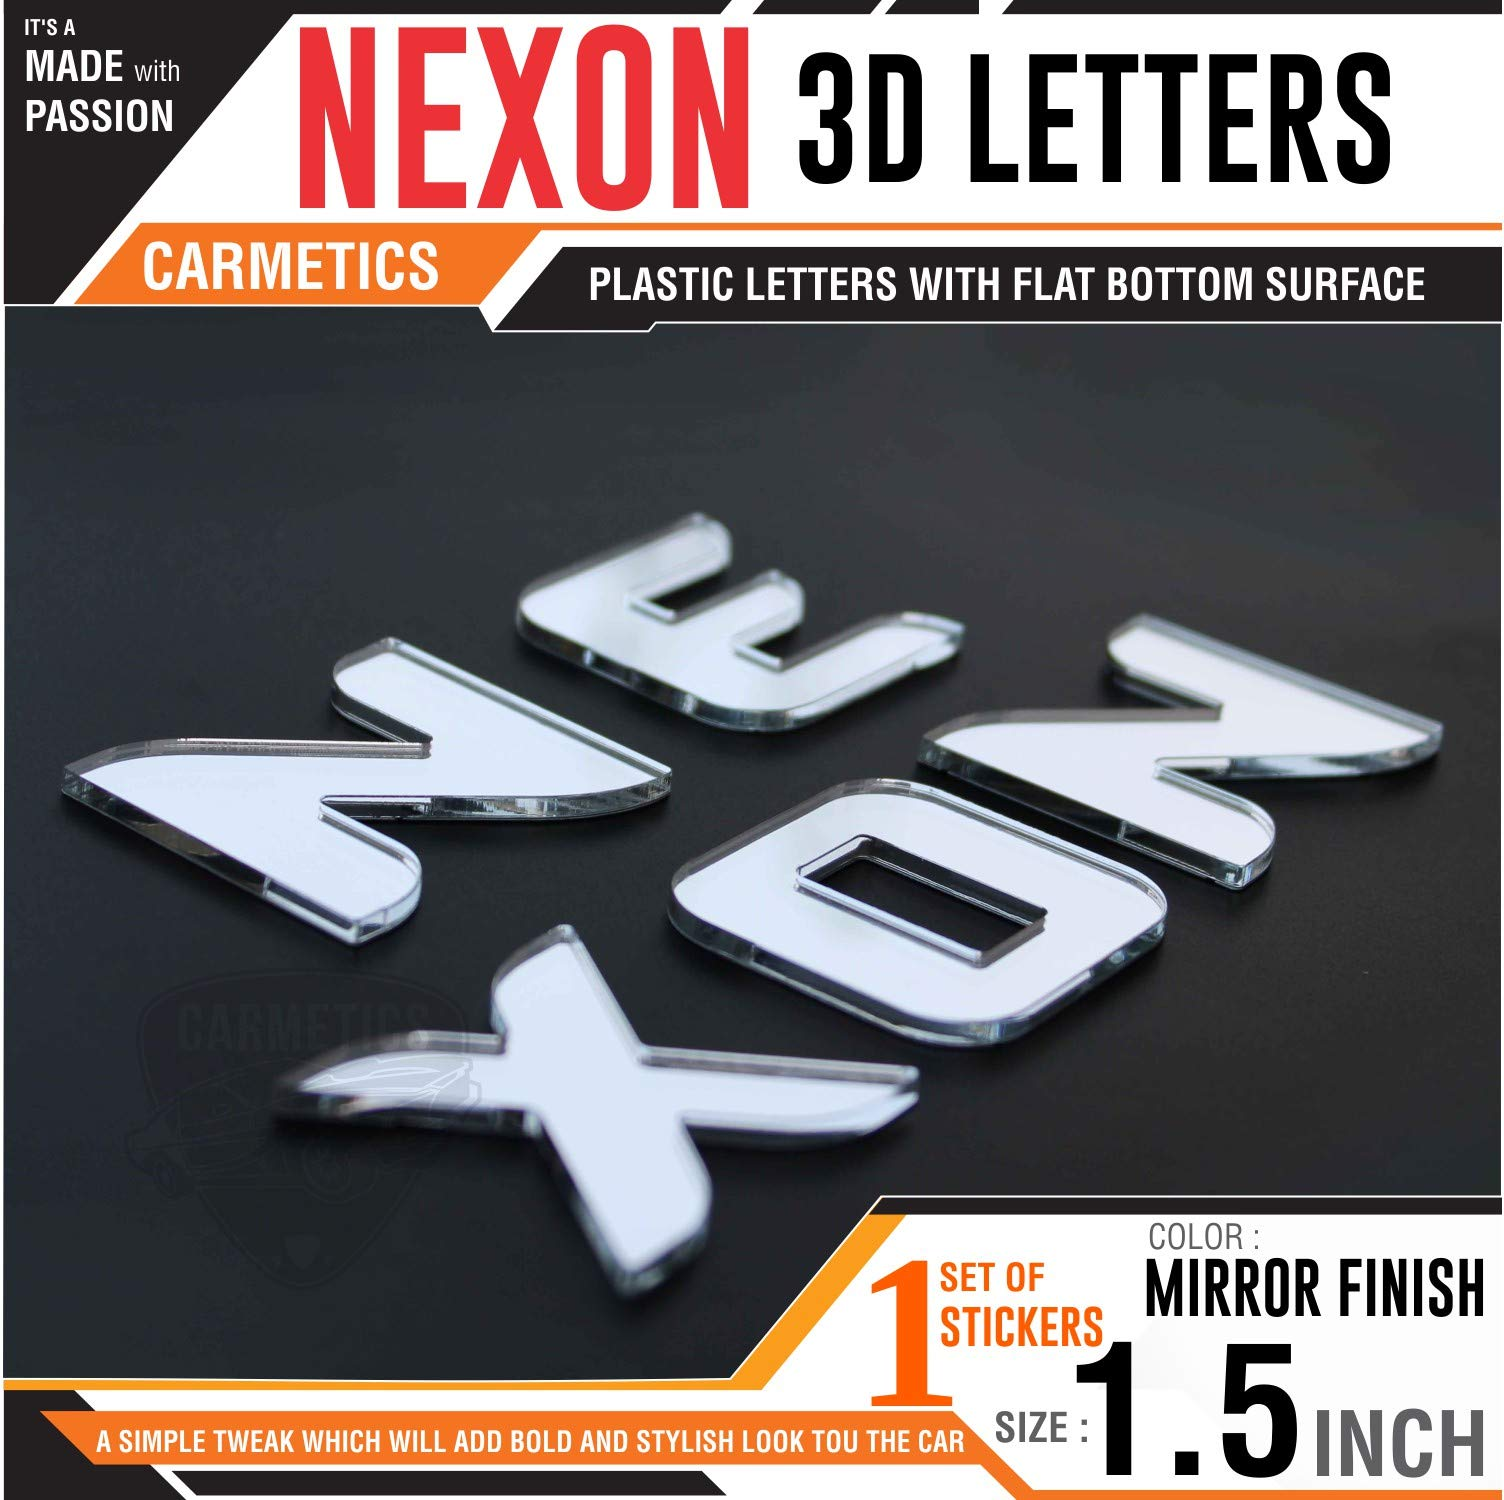 Carmetics nexon 3d letters for tata nexon mirror finish 3d sticker emblem accessories logo letters decals graphics mirror finish